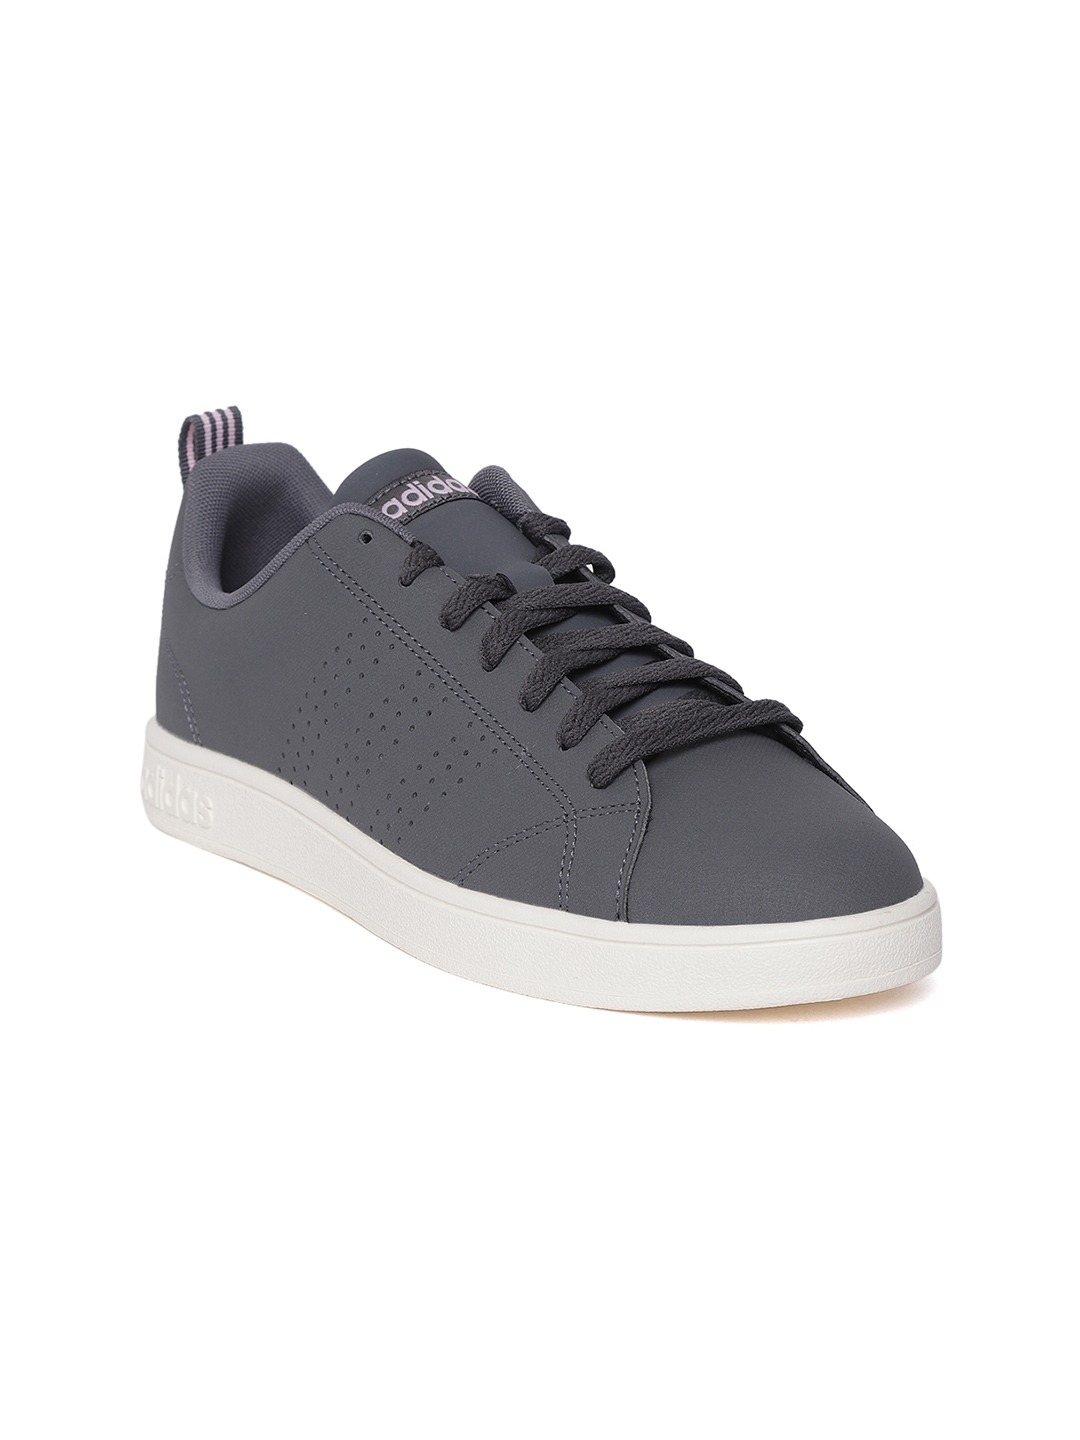 ADIDAS Women Grey Sport Inspired VS Advantage Clean Tennis Shoes